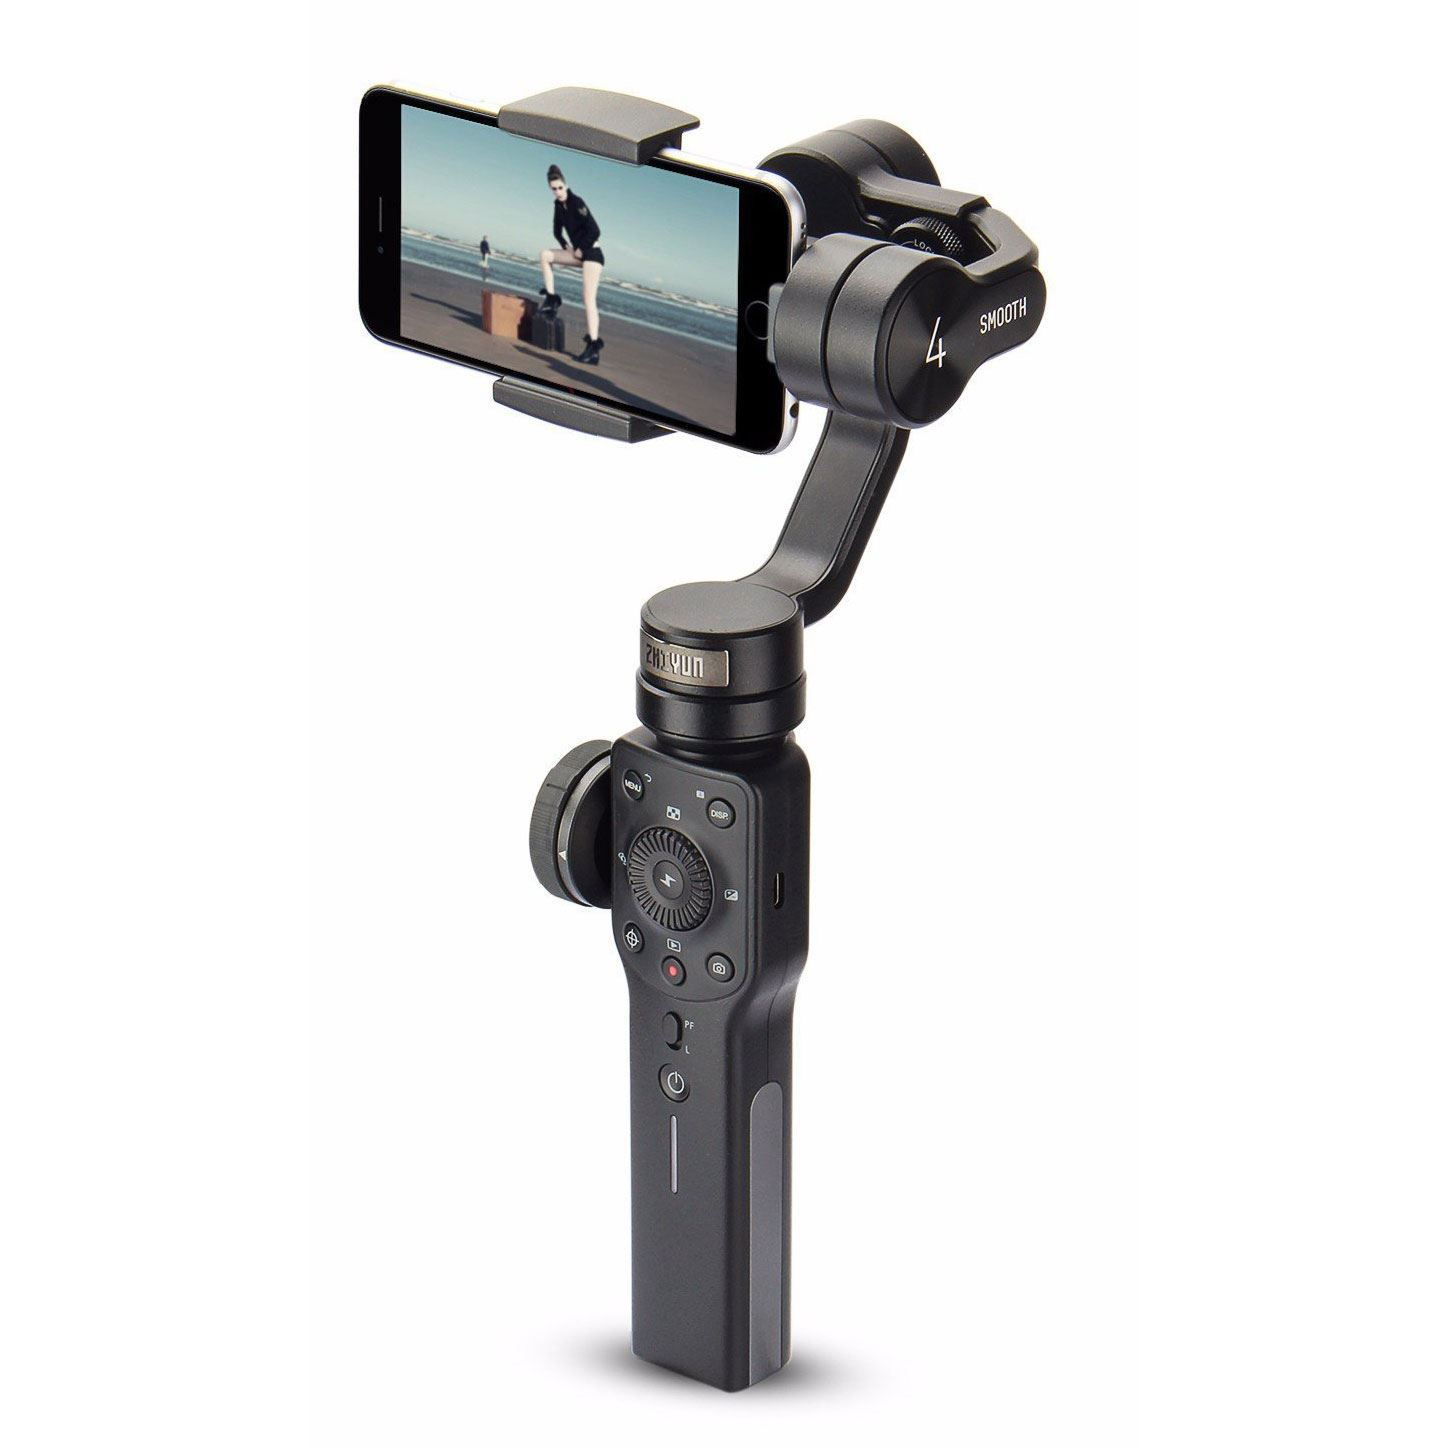 Zhiyun Smooth 4 3-Axis Handheld Gimbal Stabilizer Black